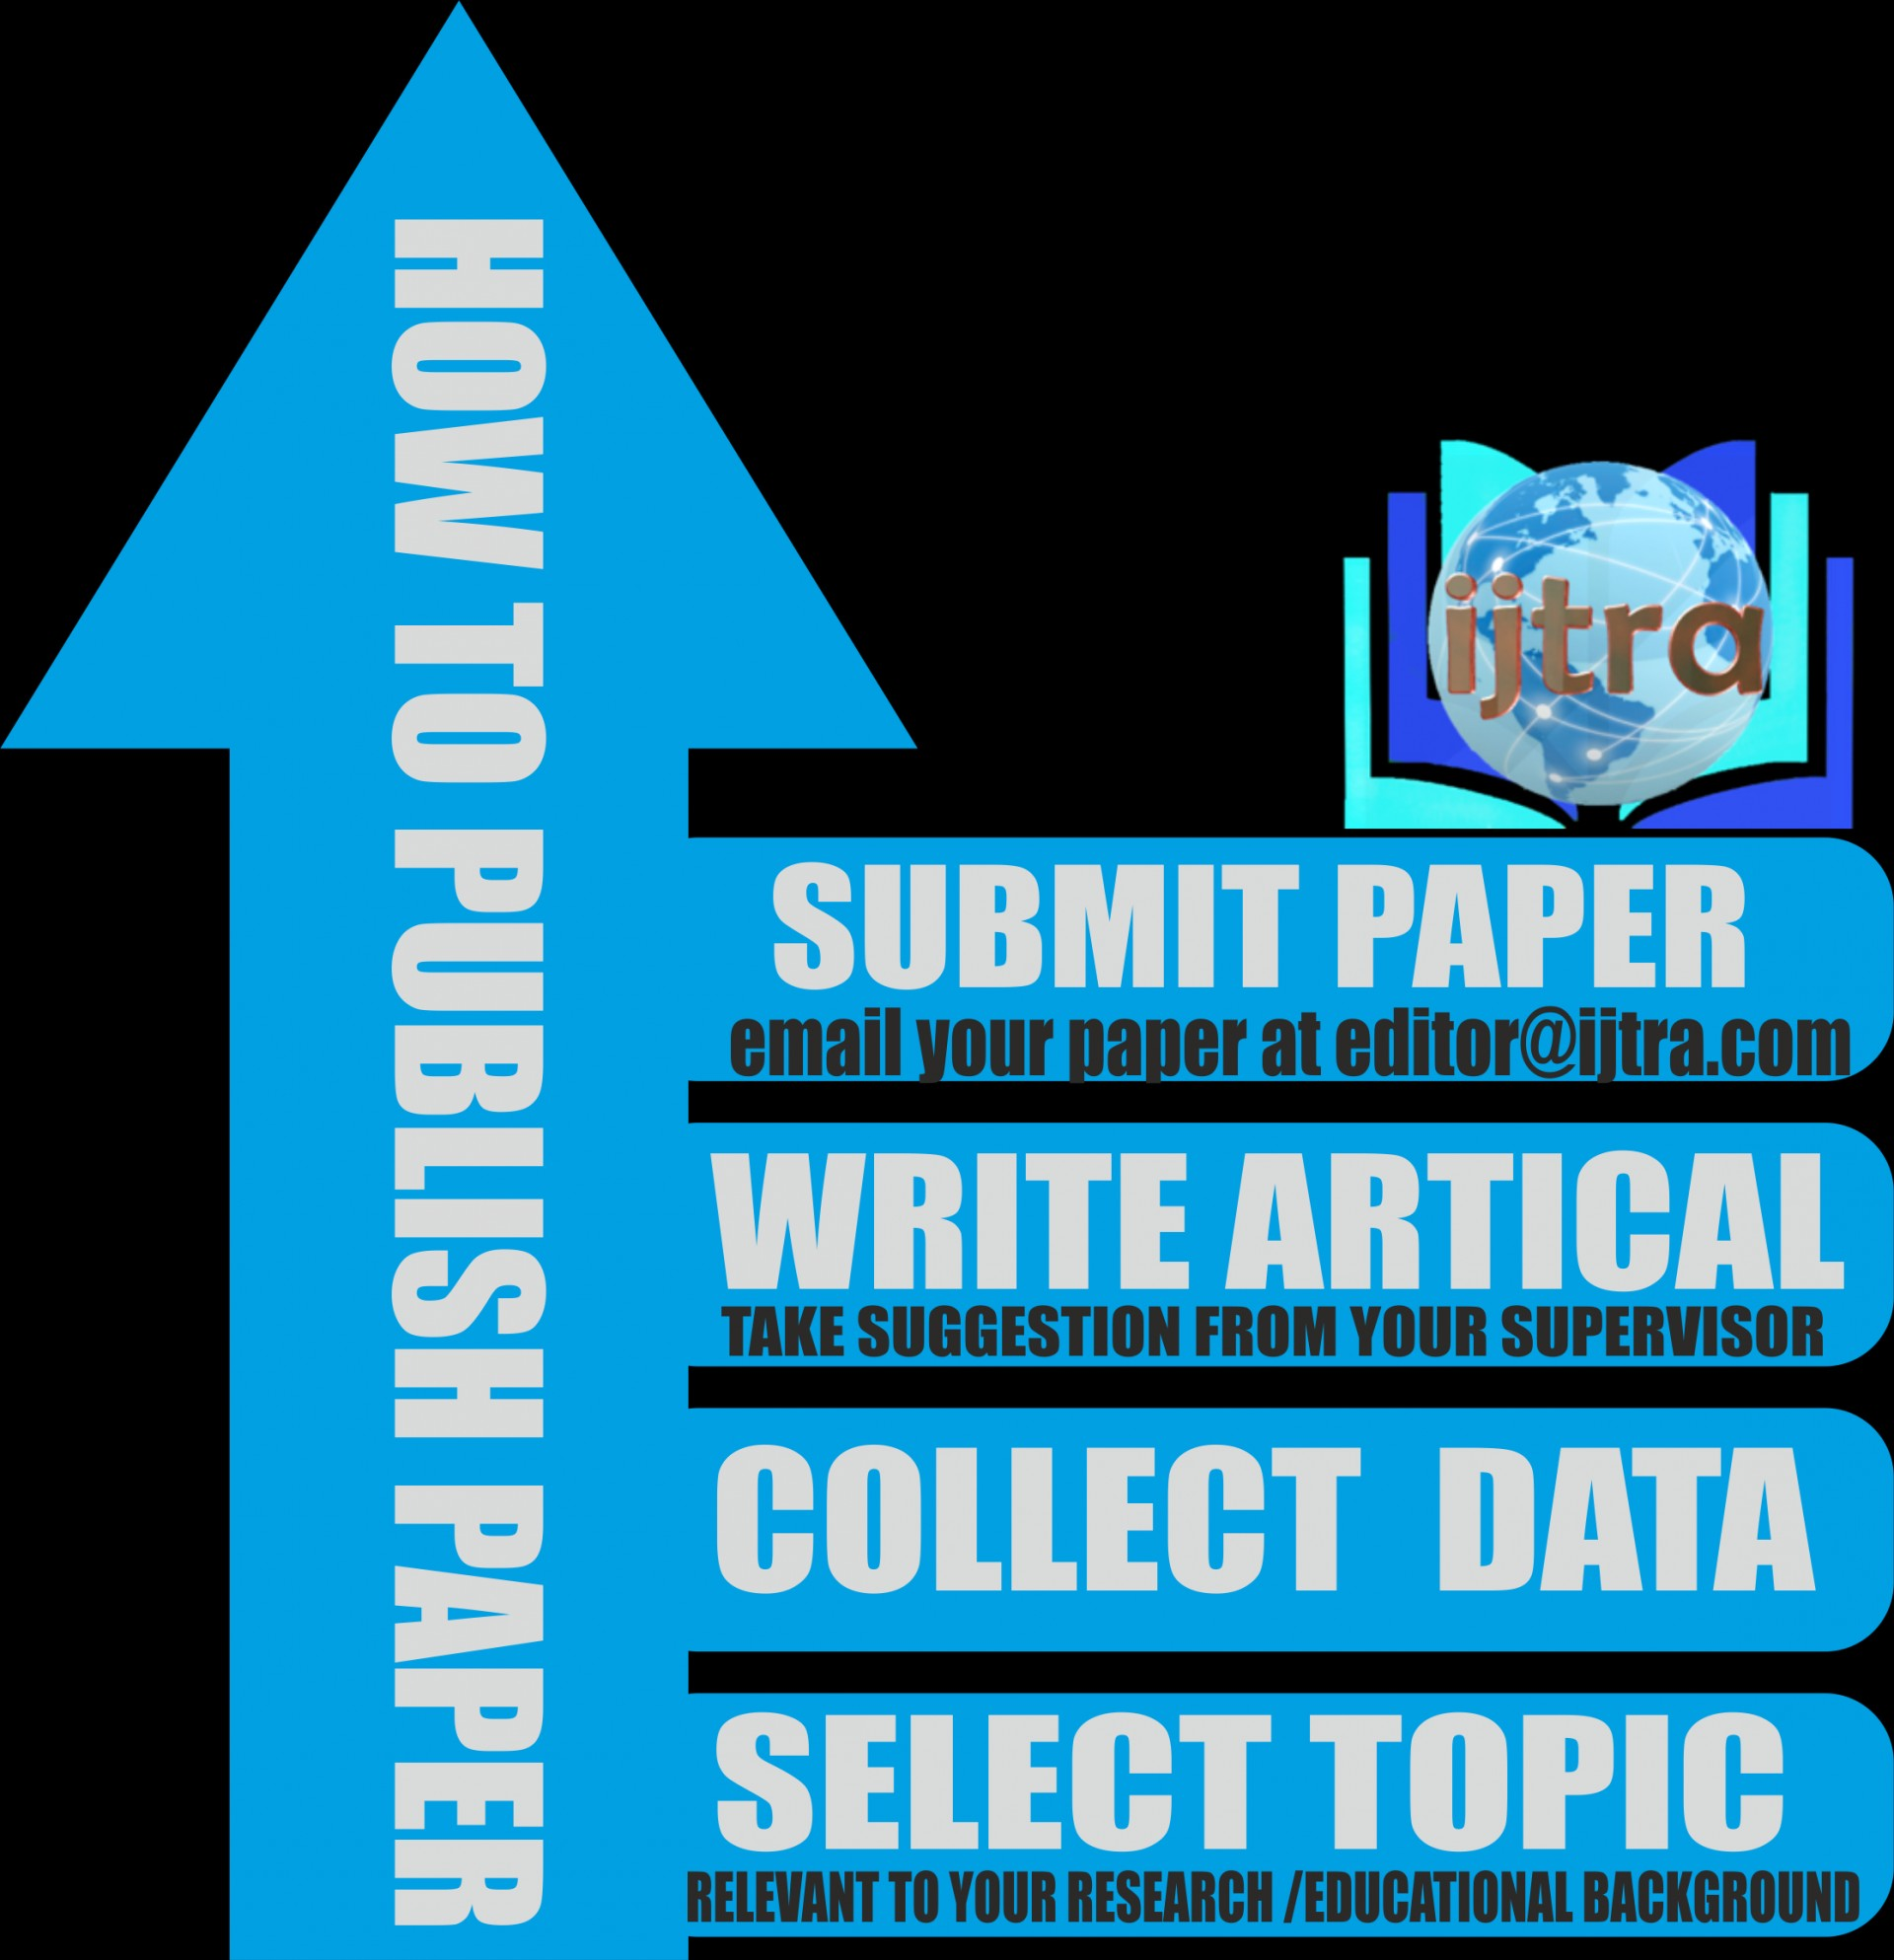 023 Ijtra Author Ins Research Paper Breathtaking Editor Free Editing Software On Text 1920